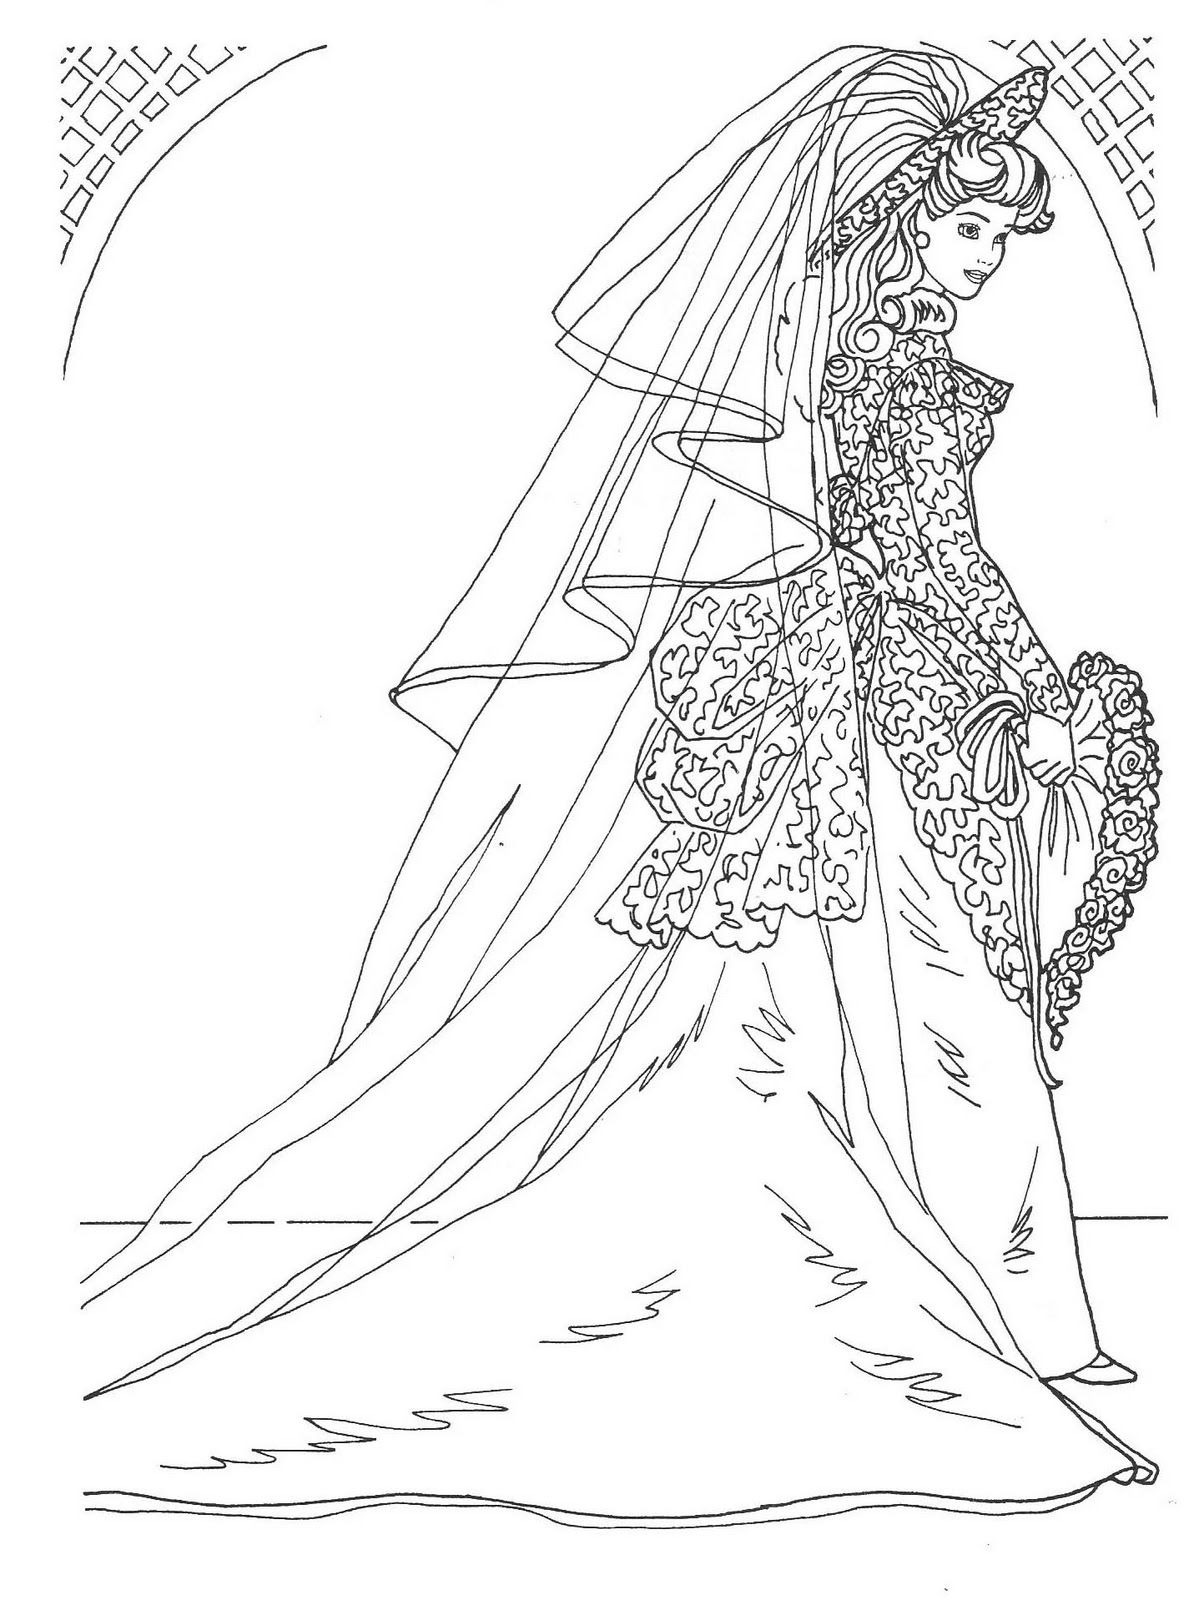 barbie coloring pages colouring pages coloring sheets coloring book wedding coloring pages coloring for adults adult coloring color art wedding day